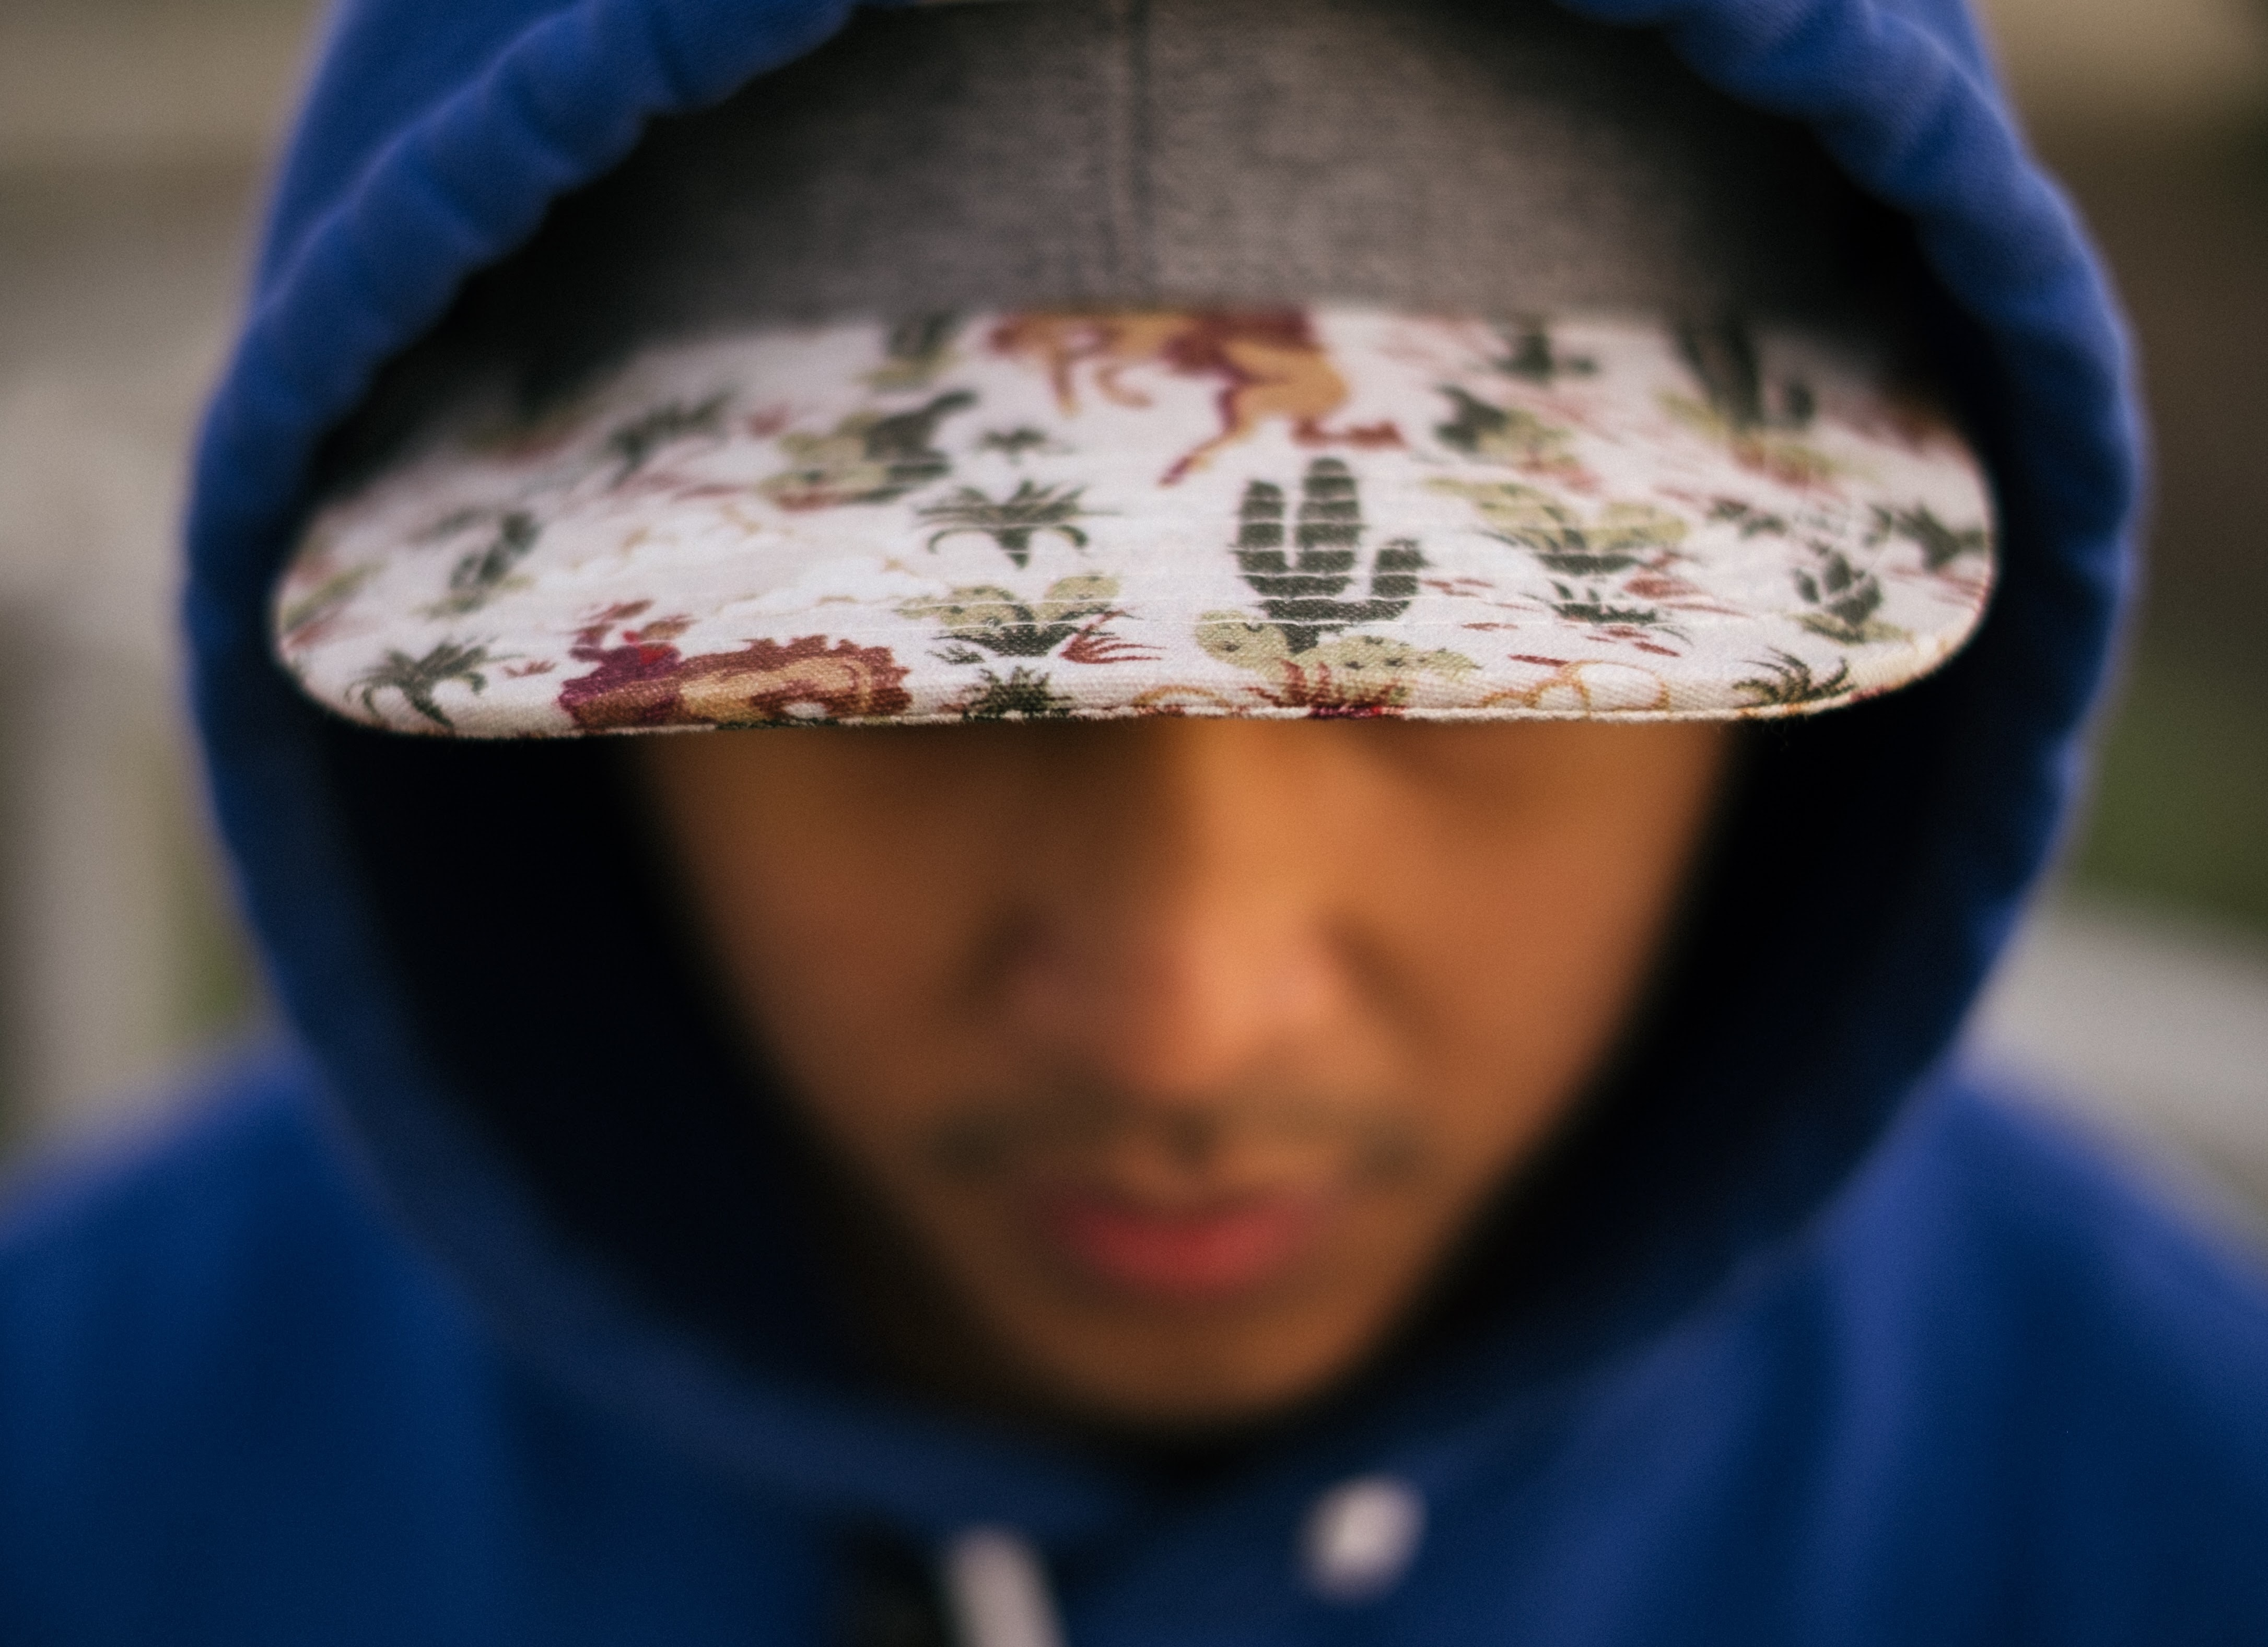 A person in a baseball cap and blue hoodie leans forward, displaying the patterned brim